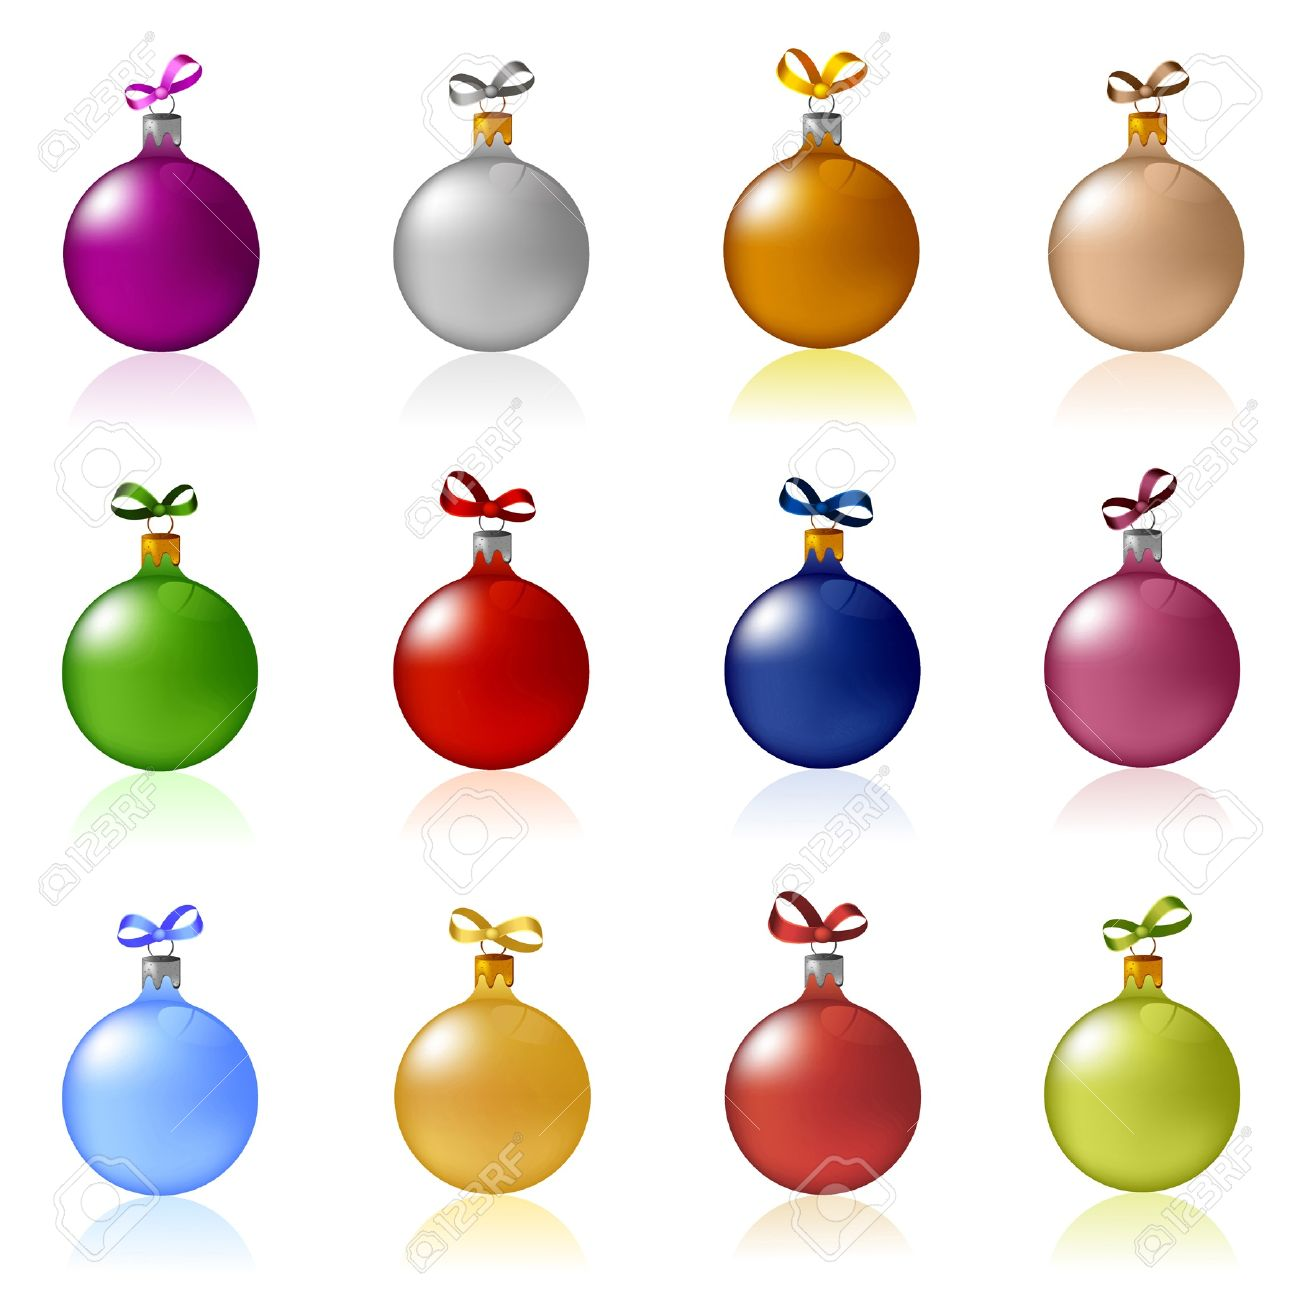 clip art of colorful christmas balls with bows royalty free cliparts rh 123rf com colorful clip art of baton twirler colorful clip art of baton twirler